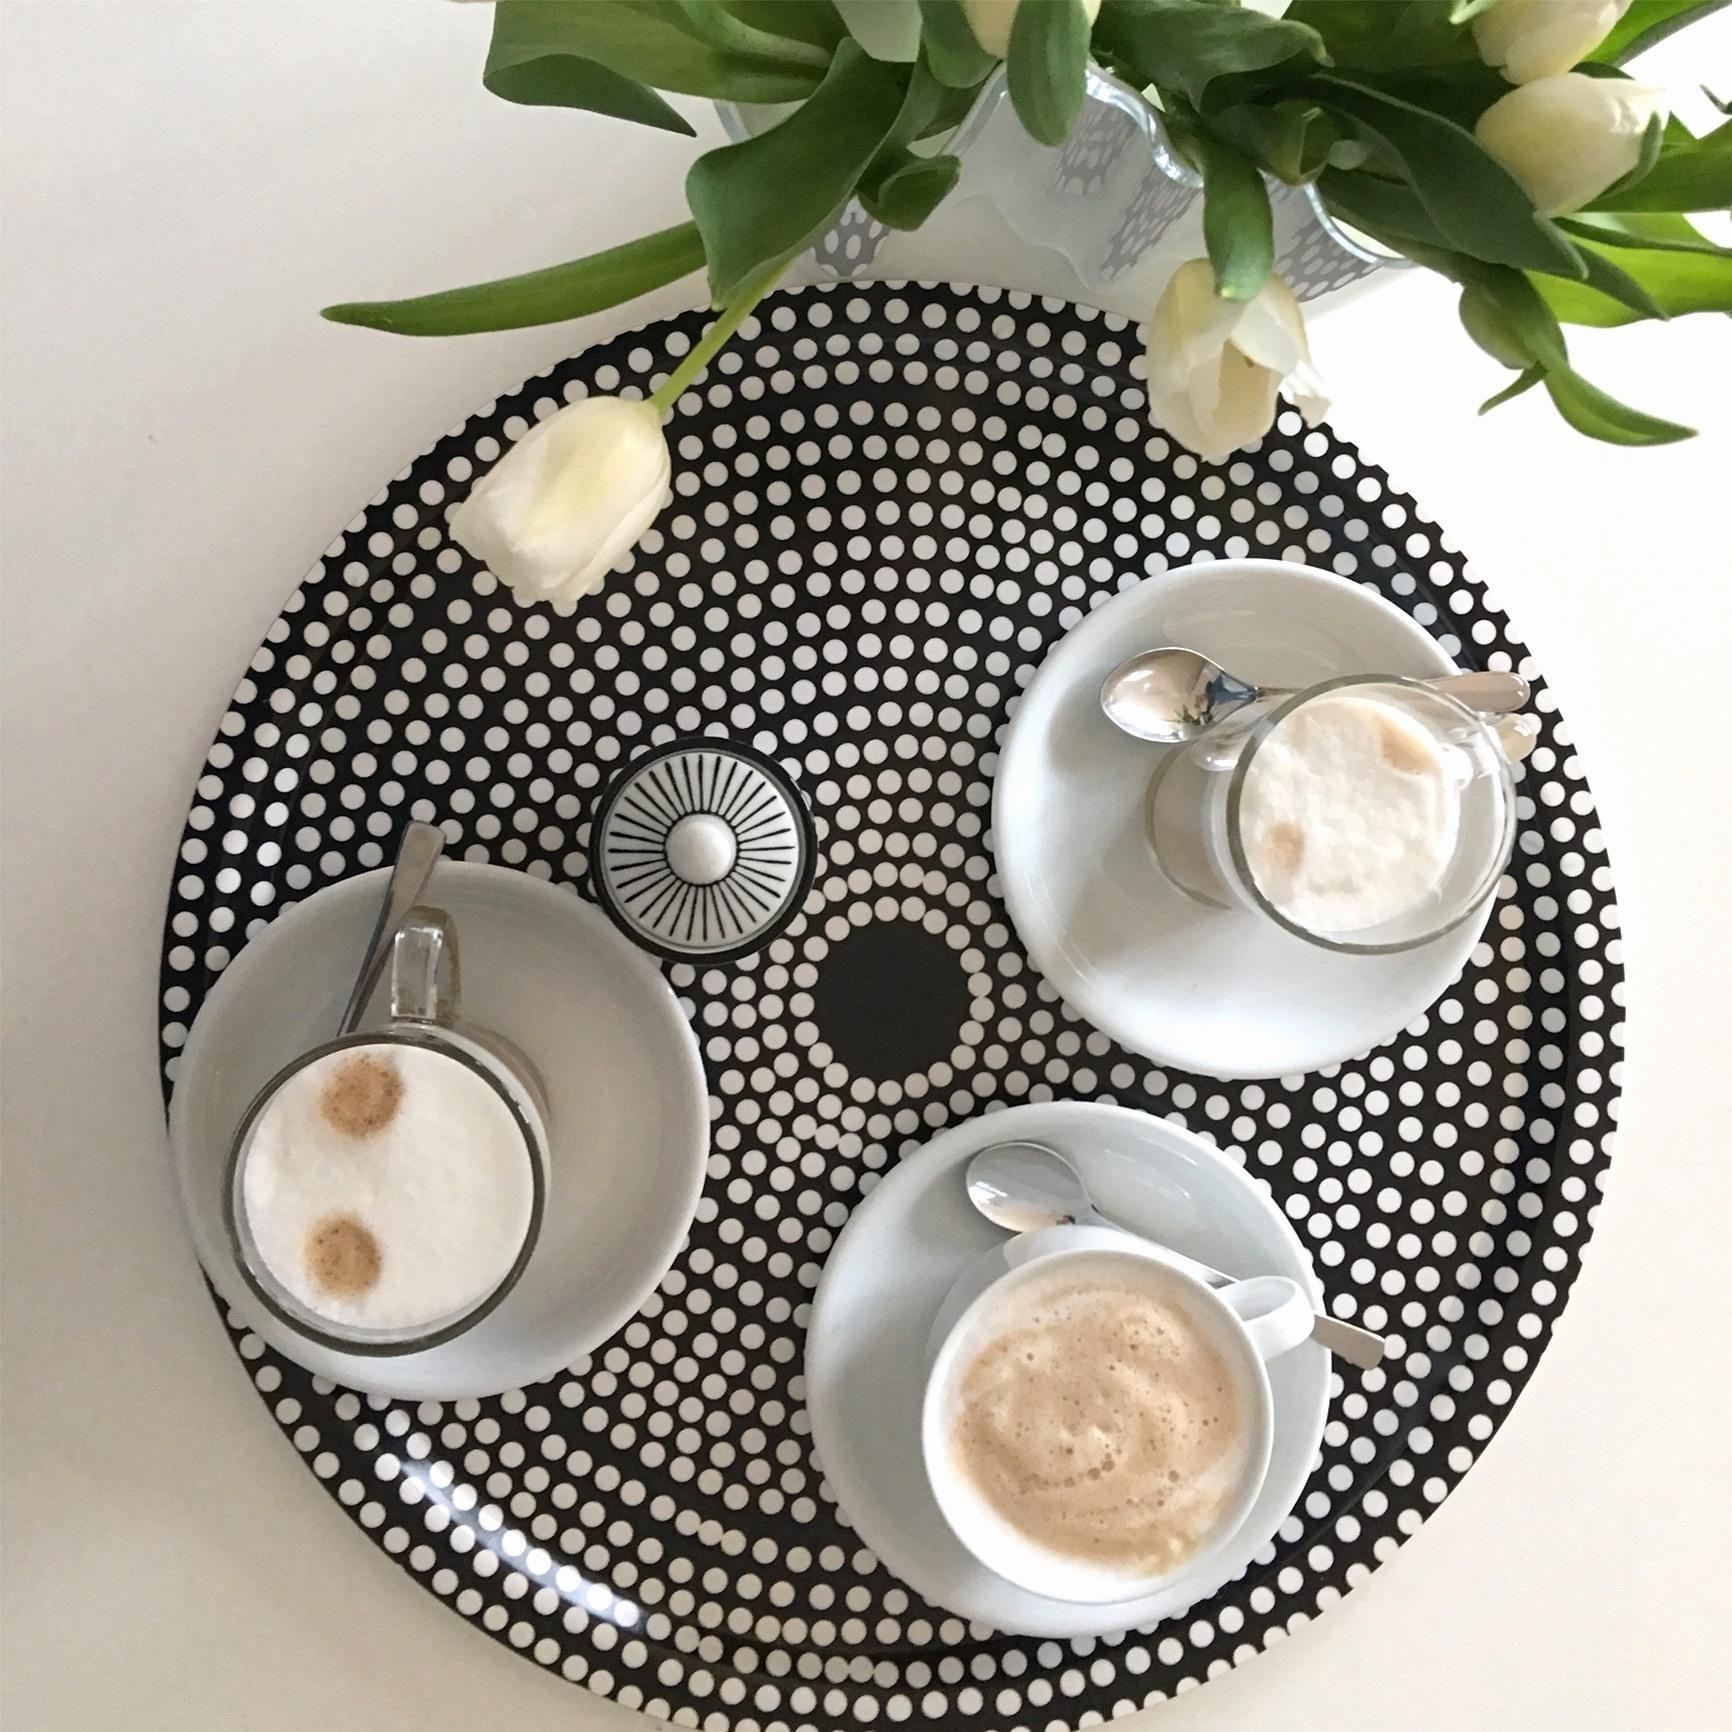 #coffee #coffeetime#mycoffeelove#coffeetable#marimekko #kaffee#home#table #homedecor